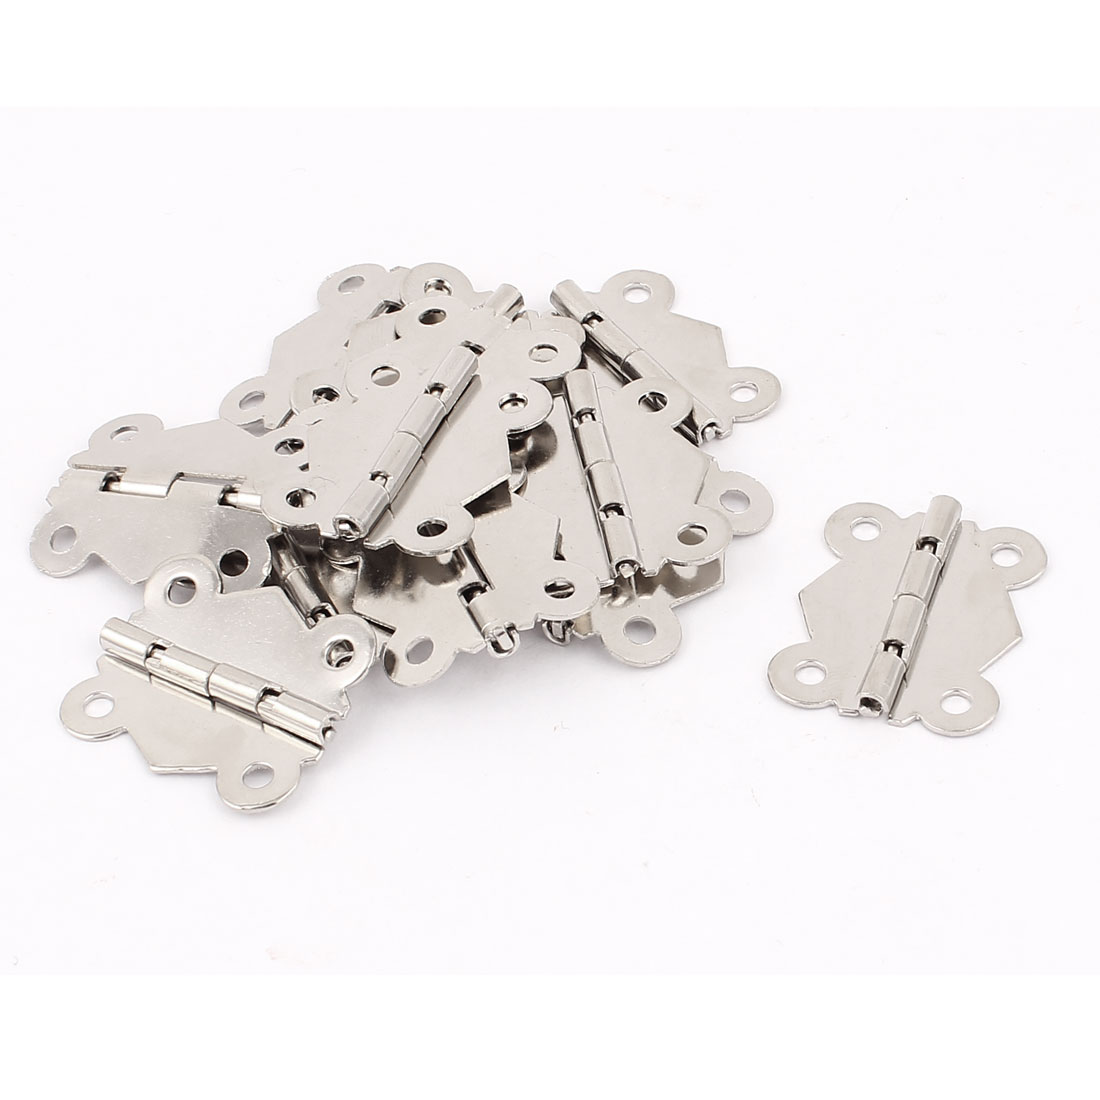 Metal Butterfly Shape Cabinet Gate Closet Door Hinges Silver Tone 13 Pcs